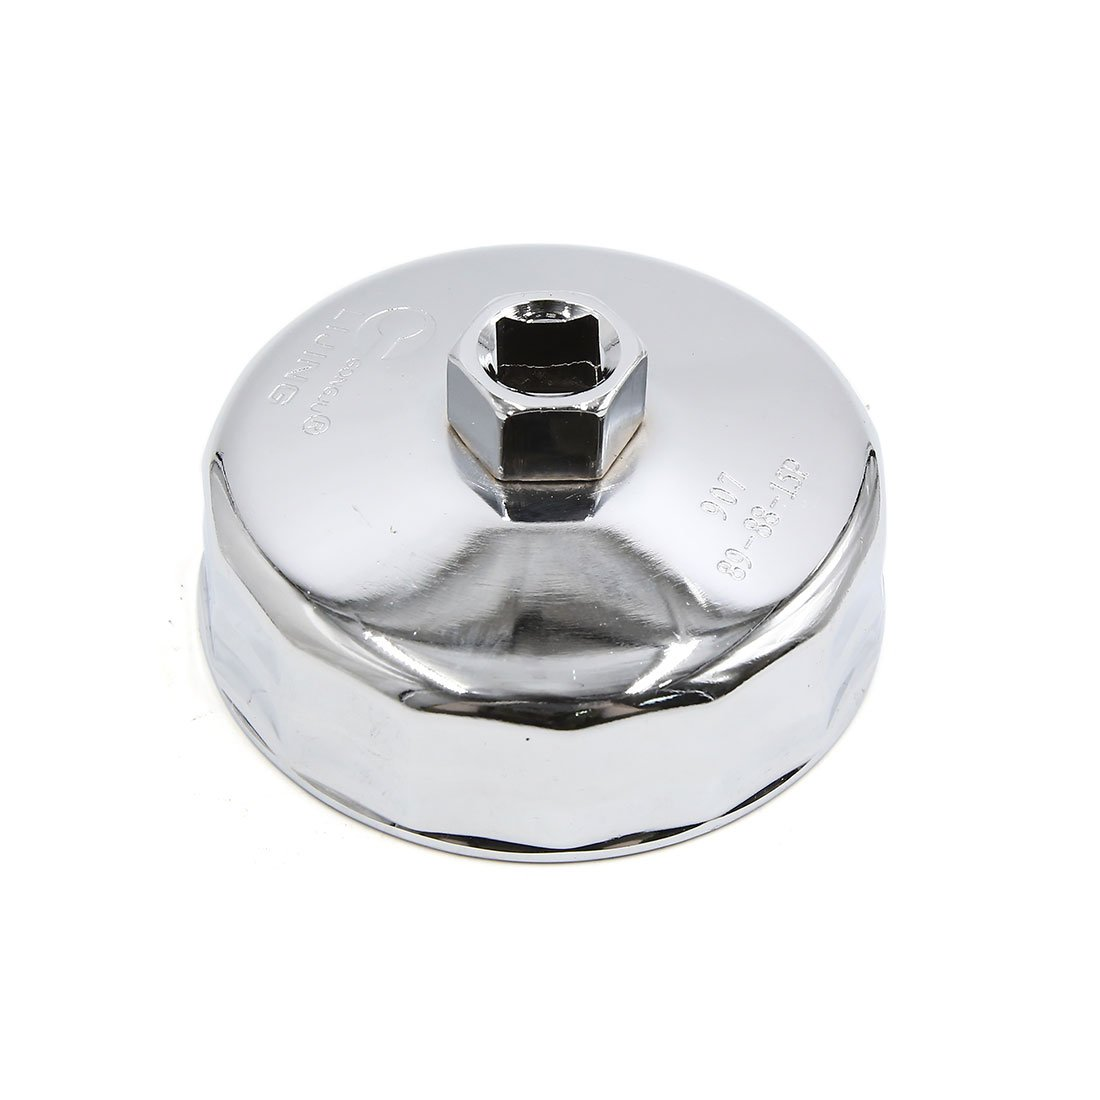 uxcell 88mm Inner Dia 15 Flute Silver Tone Metal Car Oil Filter Cap Wrench Remover Tool